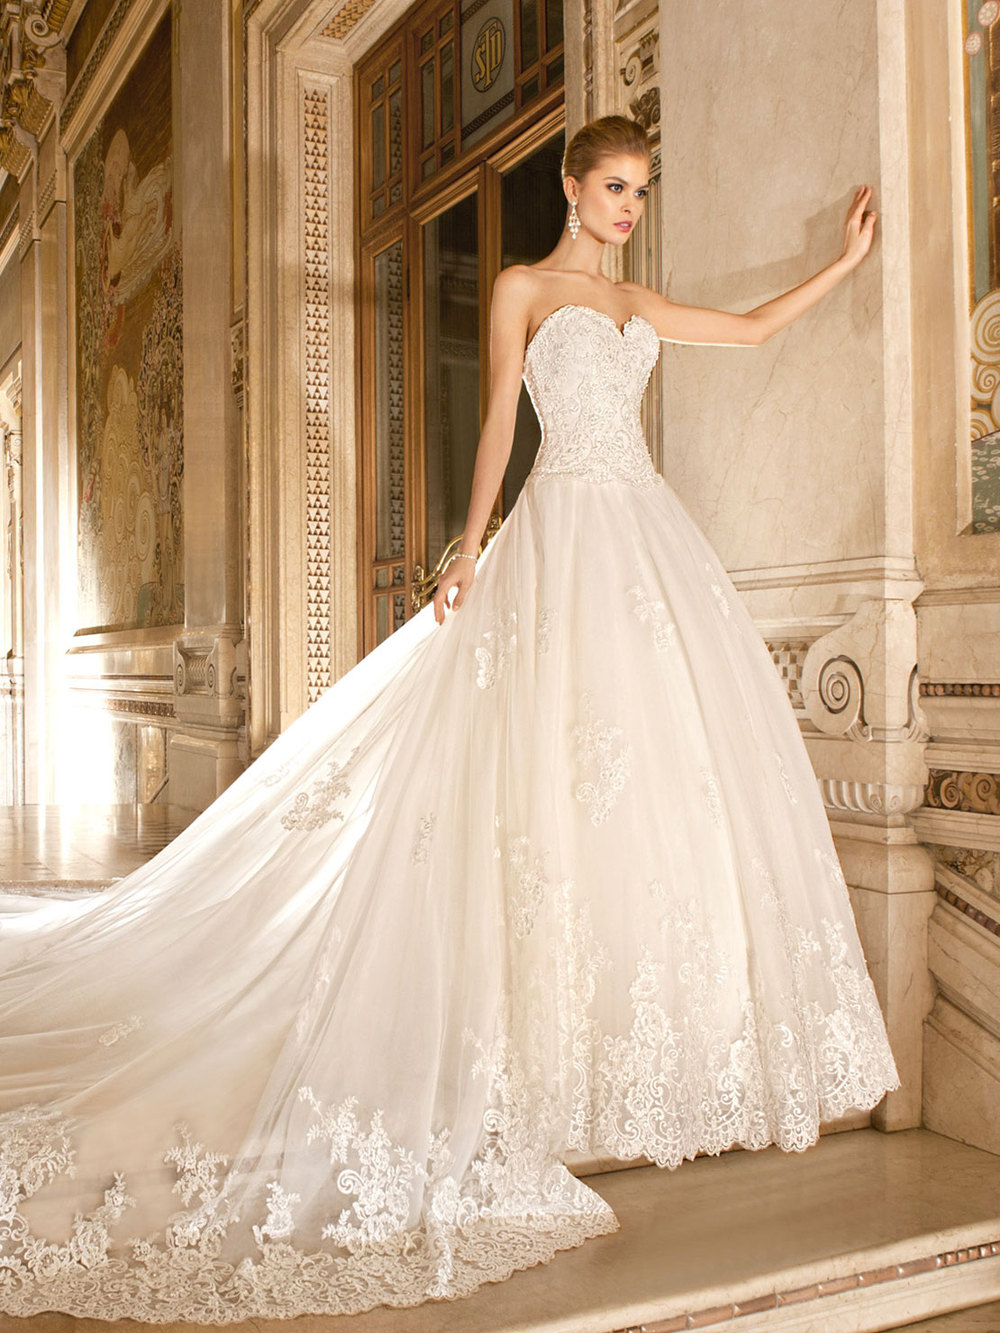 wedding dress with long cathedral train train wedding dress Wedding Dresses With Long Stunning